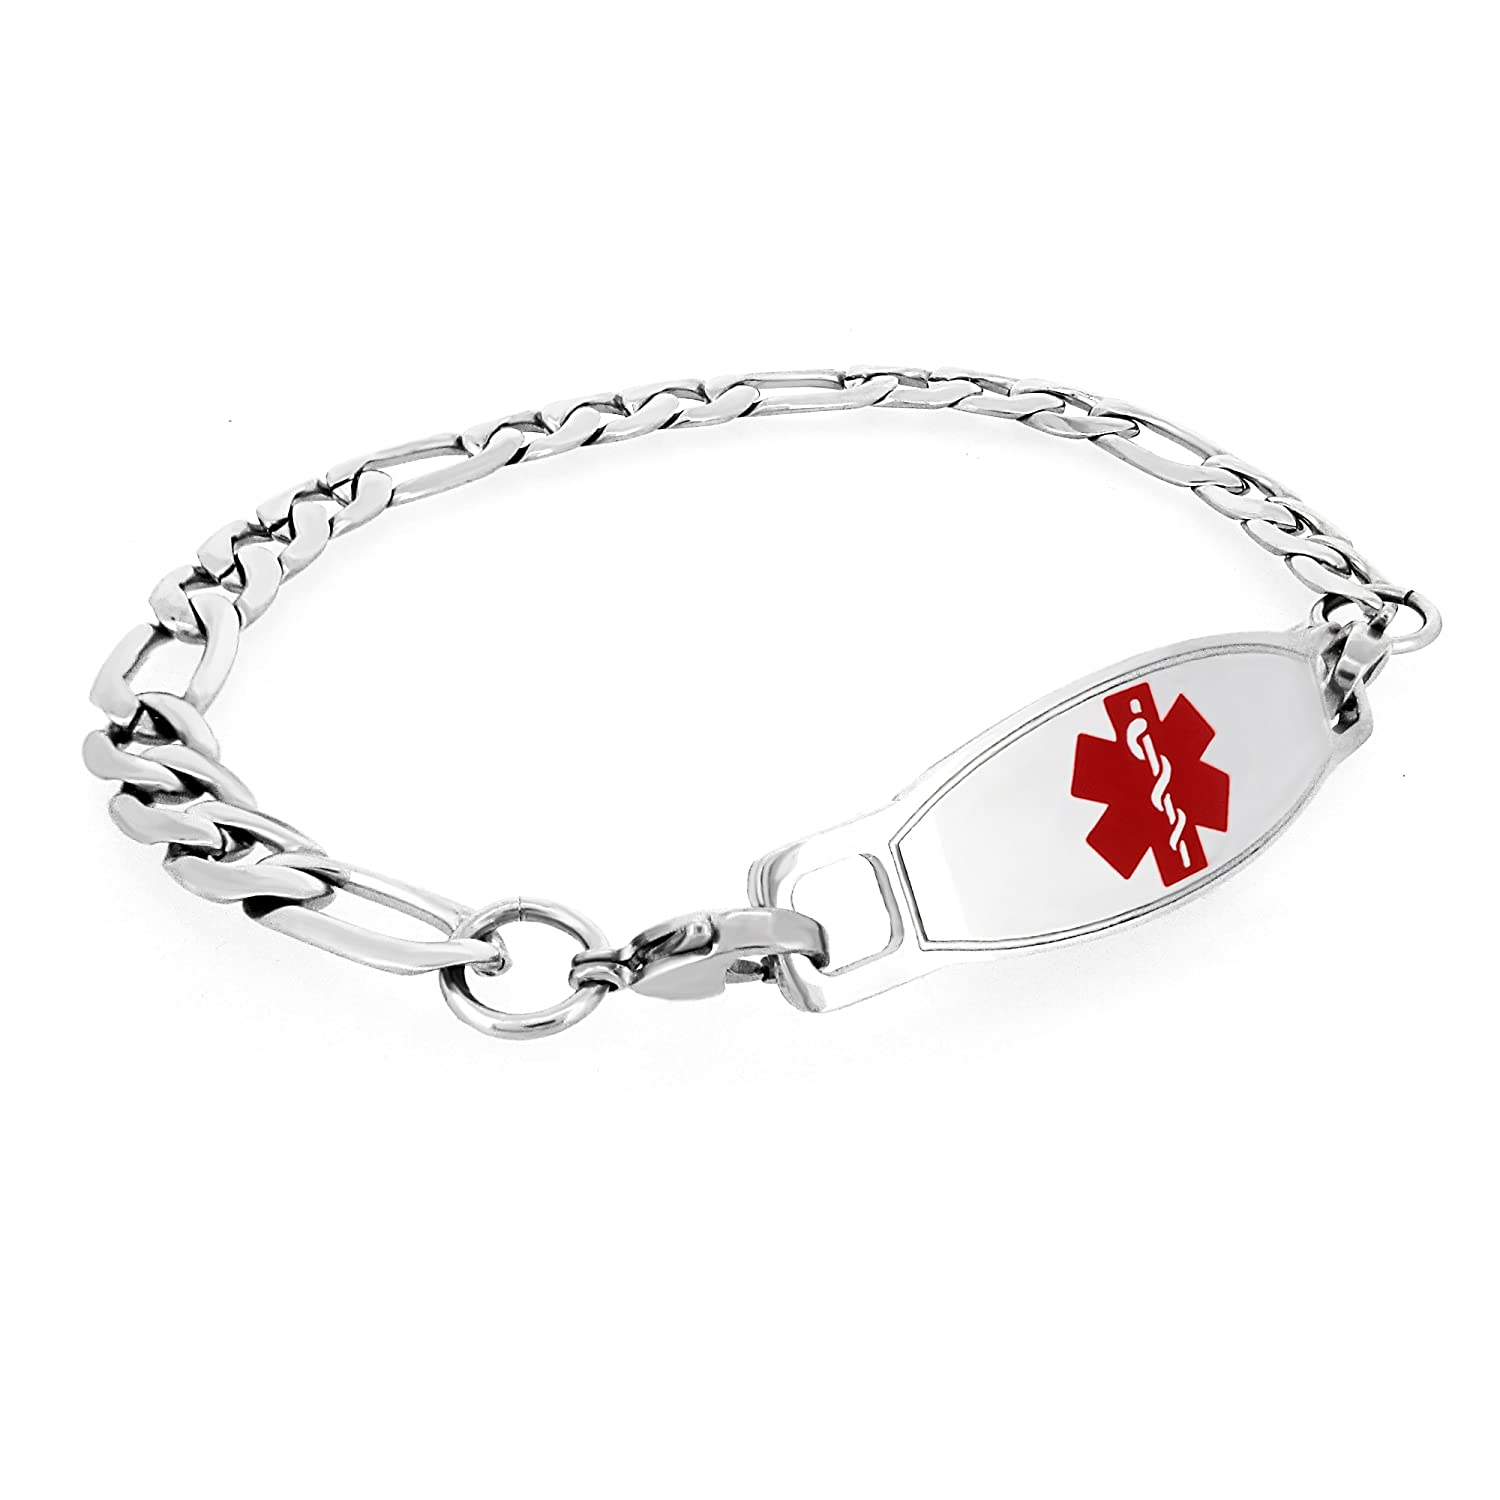 MedicEngraved Mens Womens Stainless Steel Medical ID Bracelet with Red Enamel Medical Tag - Sizes 8, 8.5, 9 (FS-RED2) Leviev Ltd. MBR-FS-RED2-7